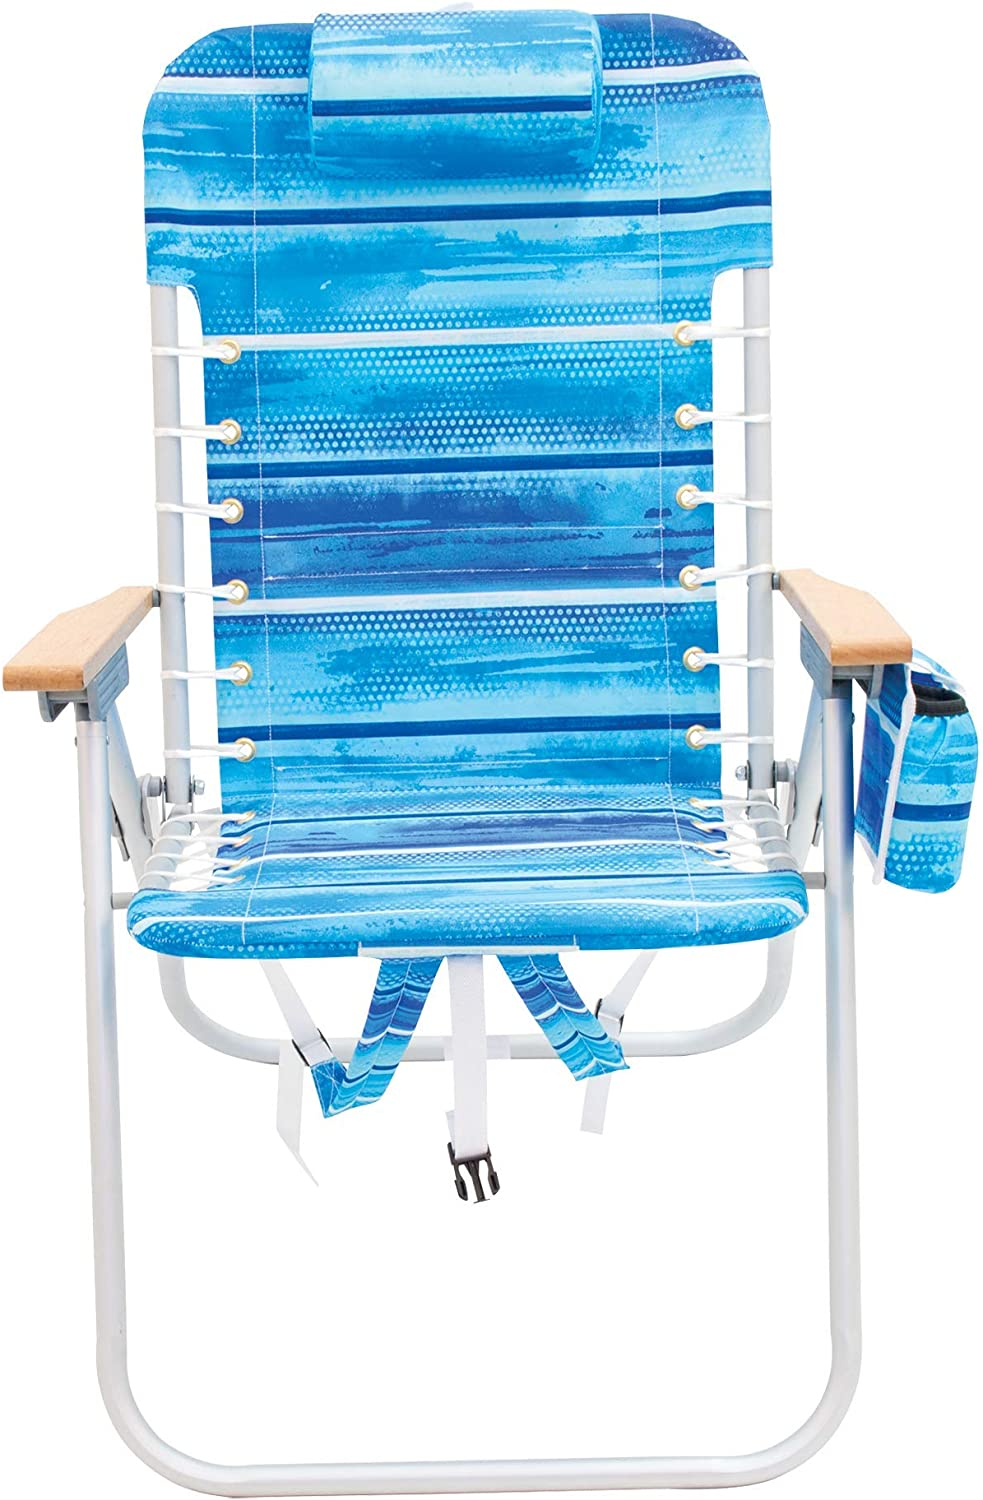 Blue Rio Gear 4-Position Lace-Up Backpack Folding Chair